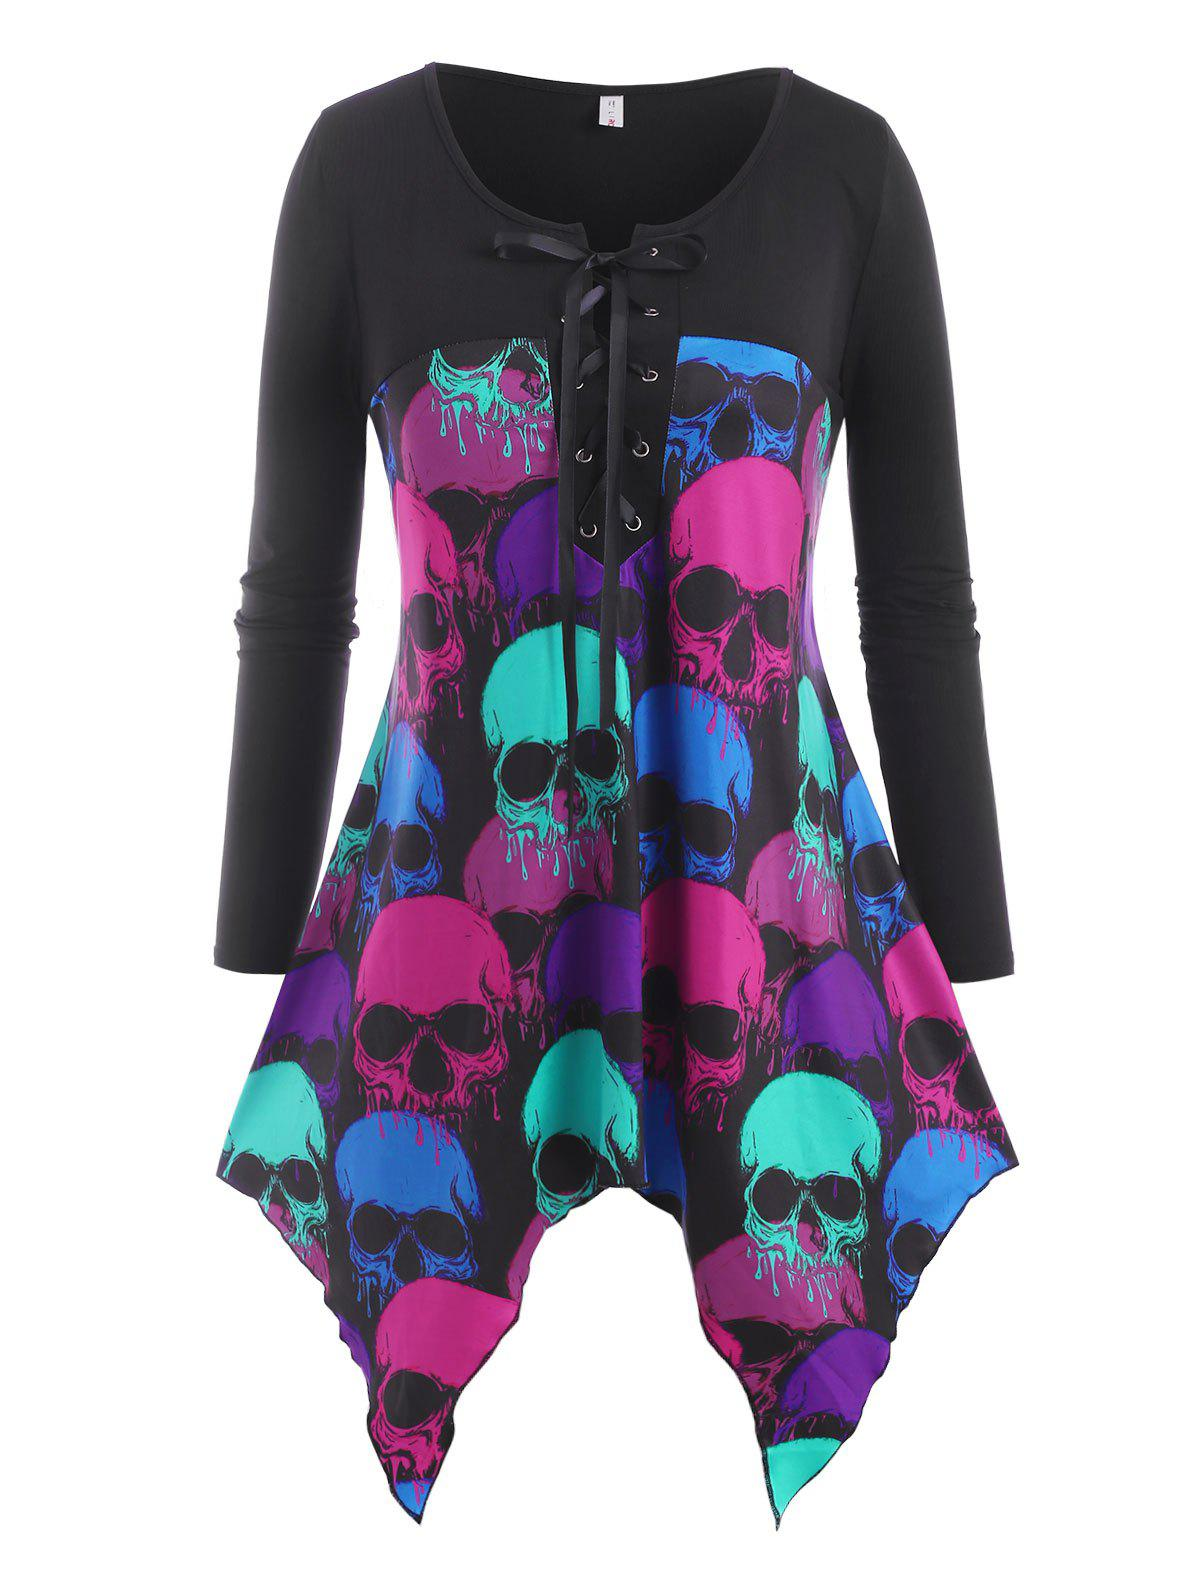 Affordable Lace Up Colorful Skull Halloween Plus Size Top